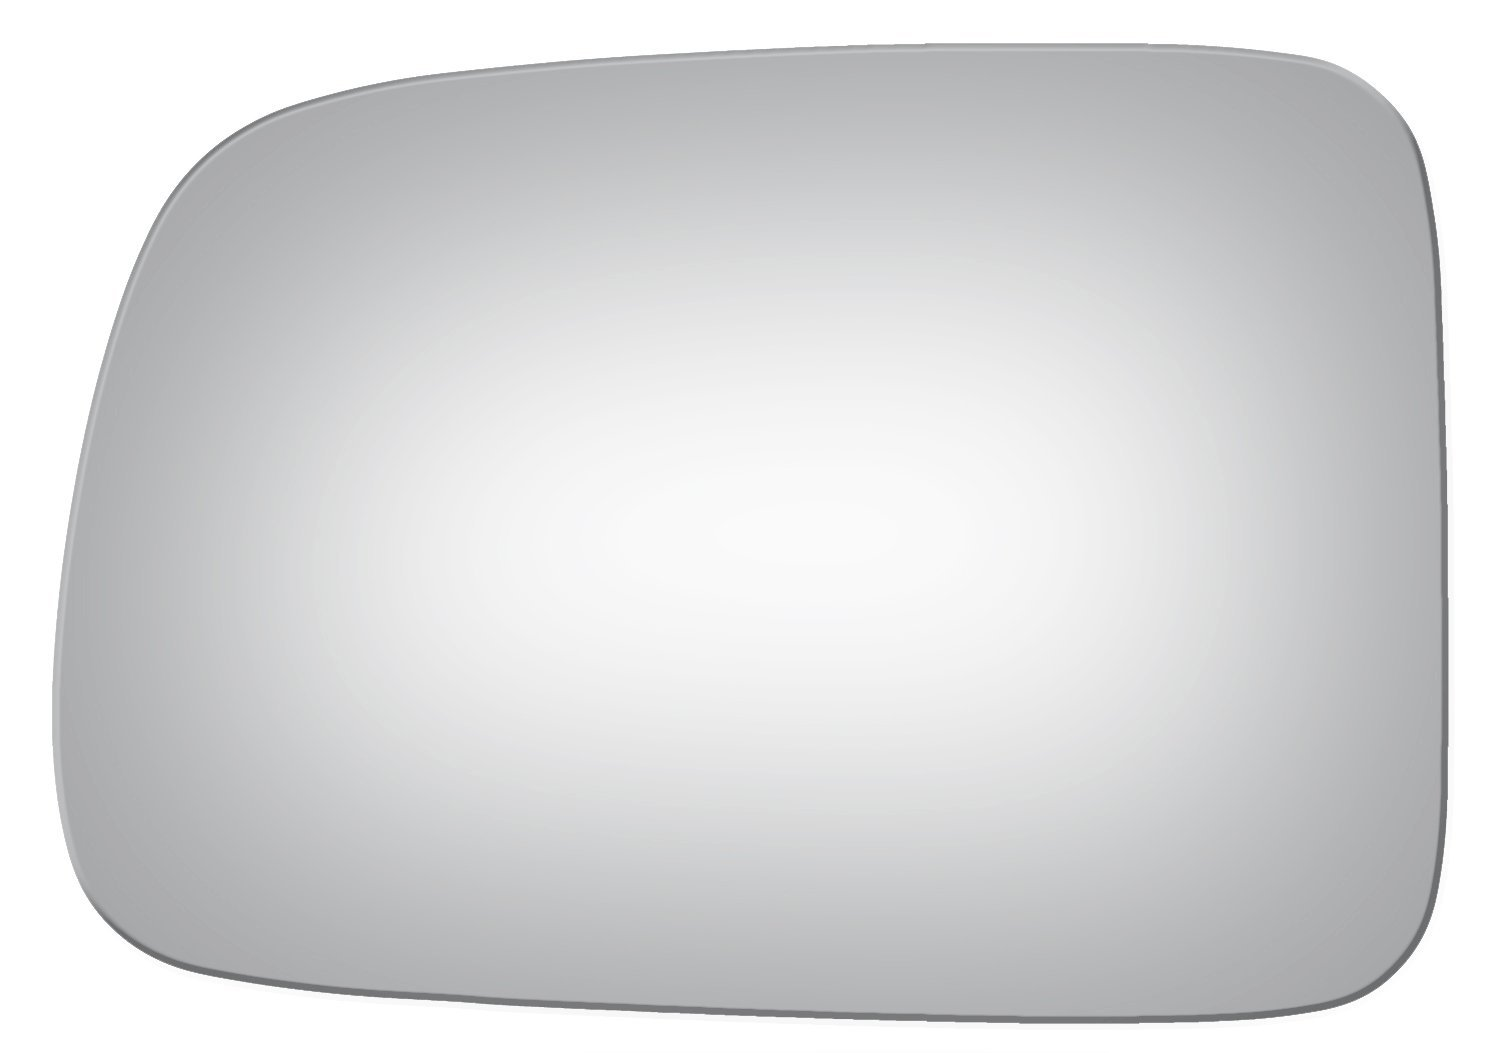 Burco 2844 Driver Side Replacement Mirror Glass Compatible with Honda CRV